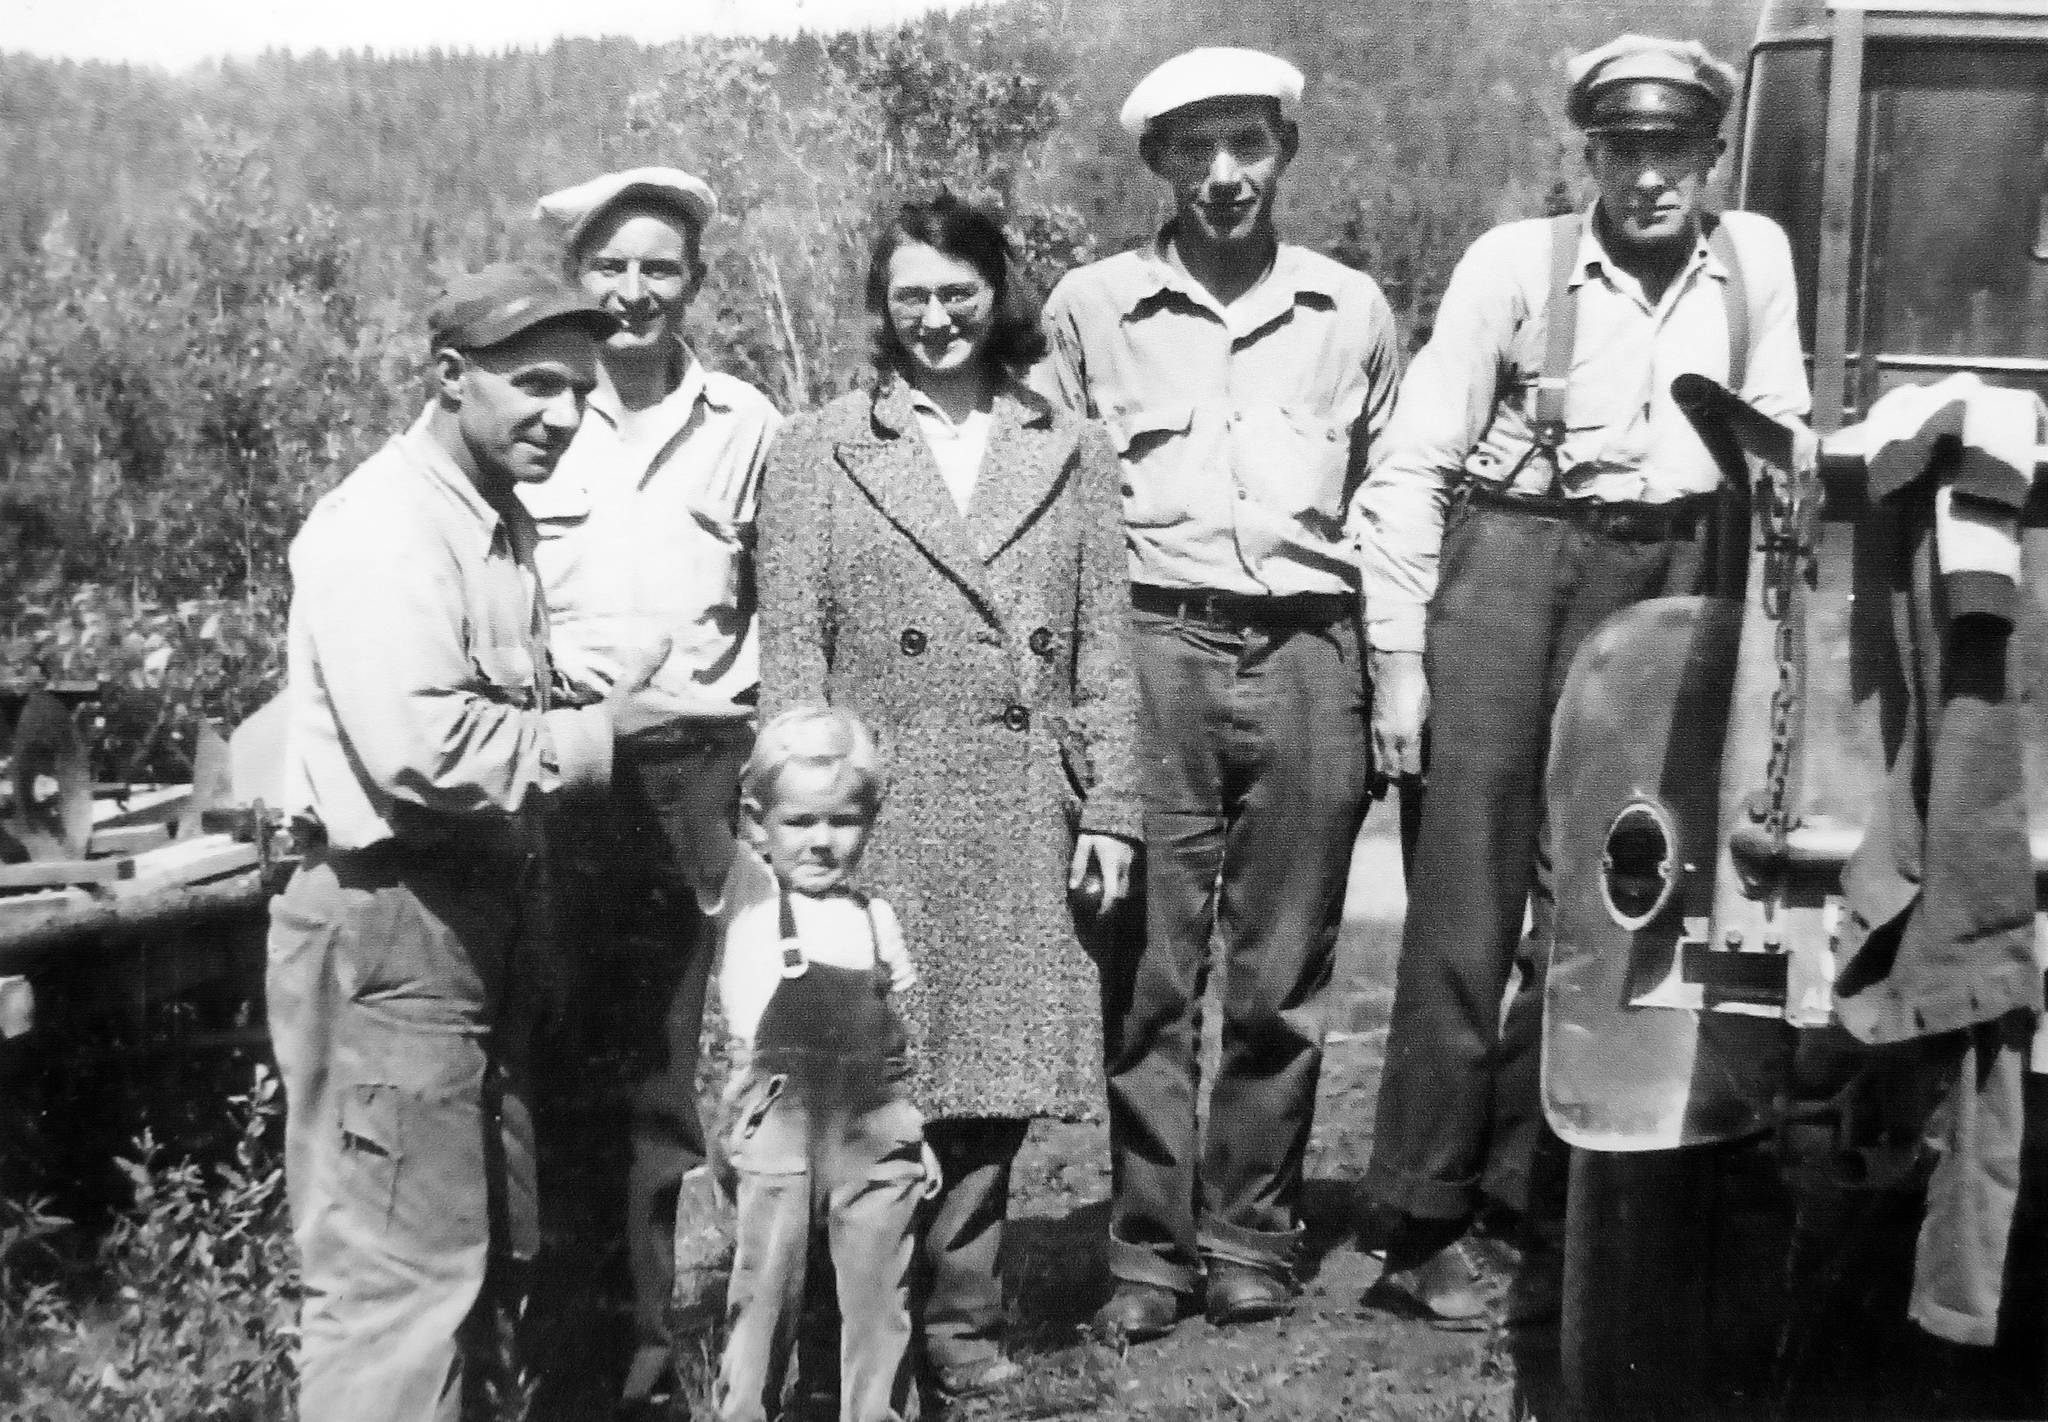 The Jims and friends. Little Jim (left) and Big Jim flank the others. In the center is Beverly Sabrowski, who, along with her husband, lived with the Jims in the 1930s. (Photo courtesy of Mona Painter)